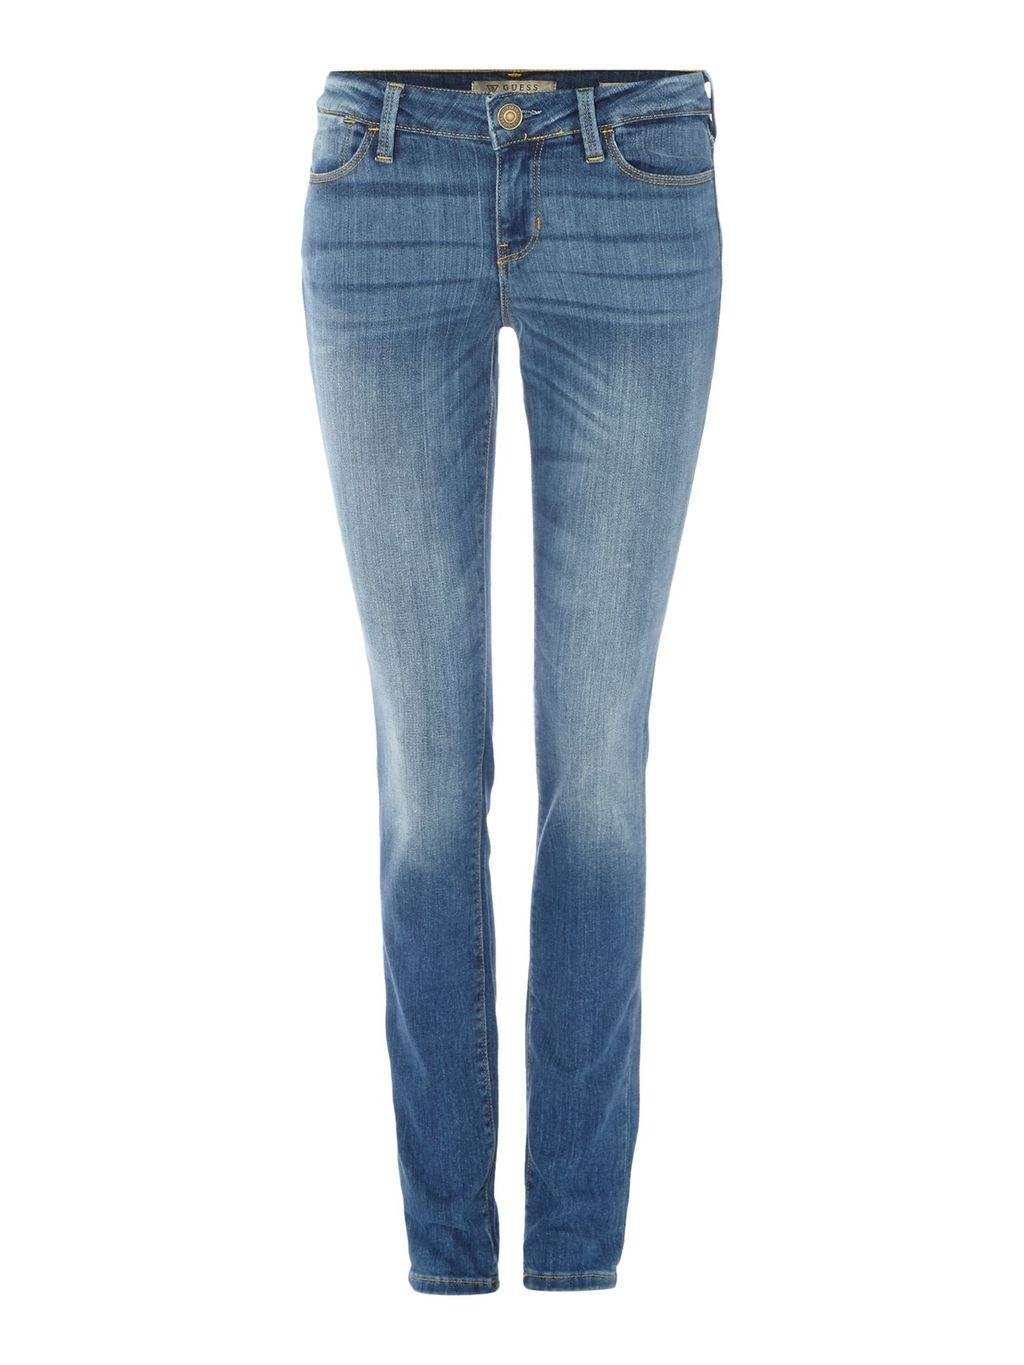 Skinny Mid Rise Jean, Denim Light Wash - style: skinny leg; length: standard; pattern: plain; pocket detail: traditional 5 pocket; waist: mid/regular rise; predominant colour: denim; occasions: casual, creative work; fibres: cotton - stretch; texture group: denim; pattern type: fabric; wardrobe: basic; season: a/w 2016